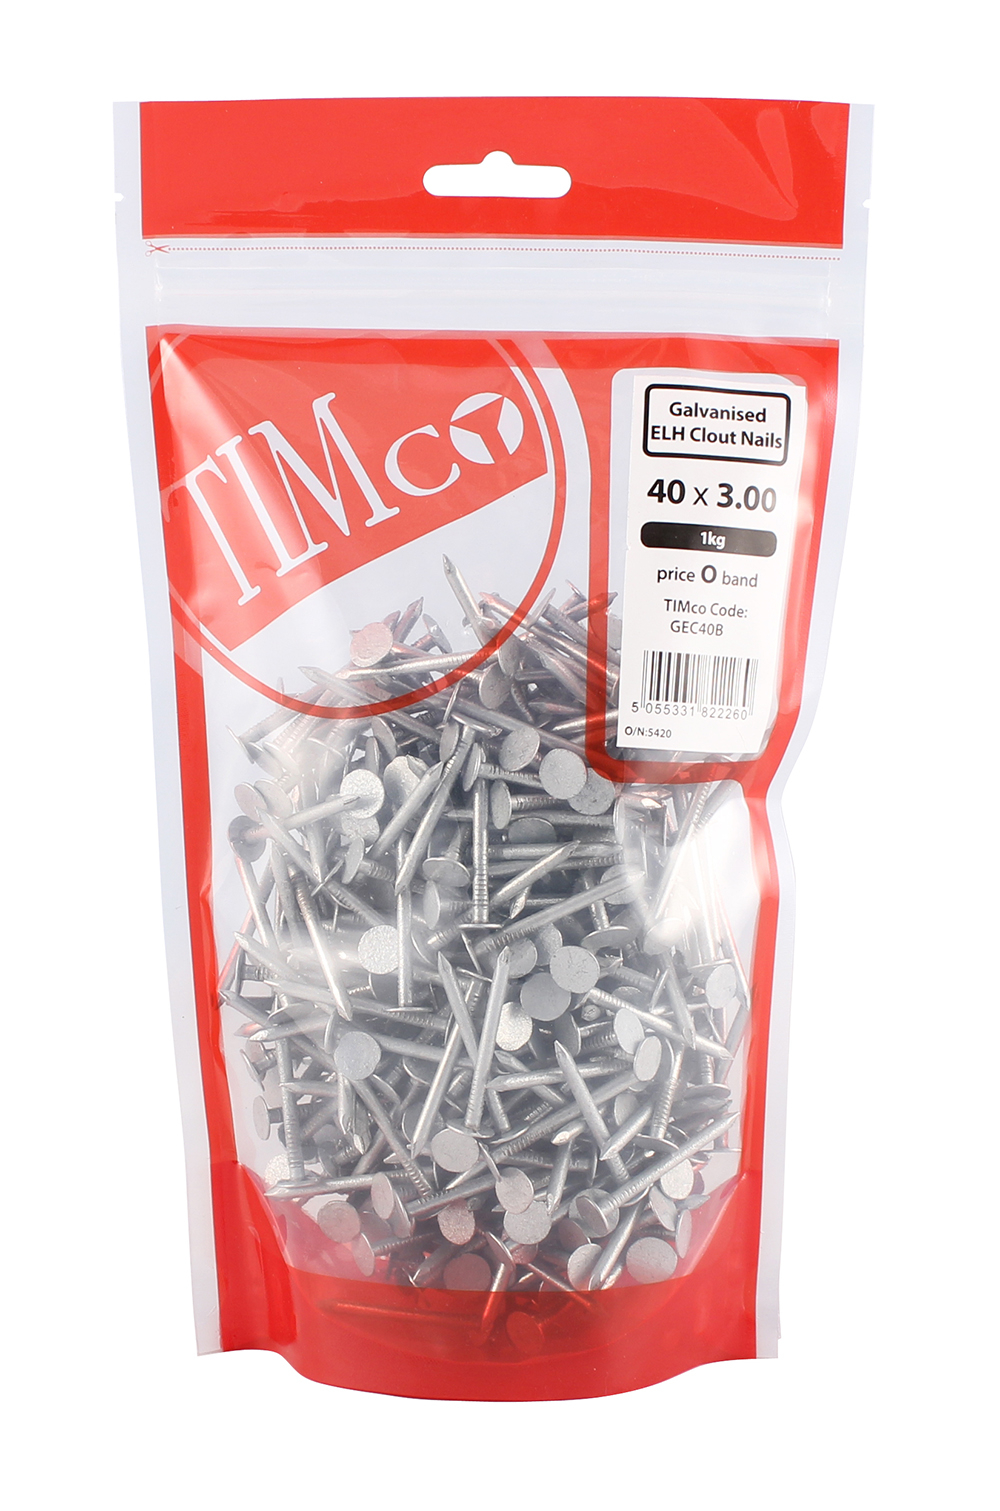 TIMco 40 x 3.00 Clout Nails ELH - Galvanised 1kg Bag